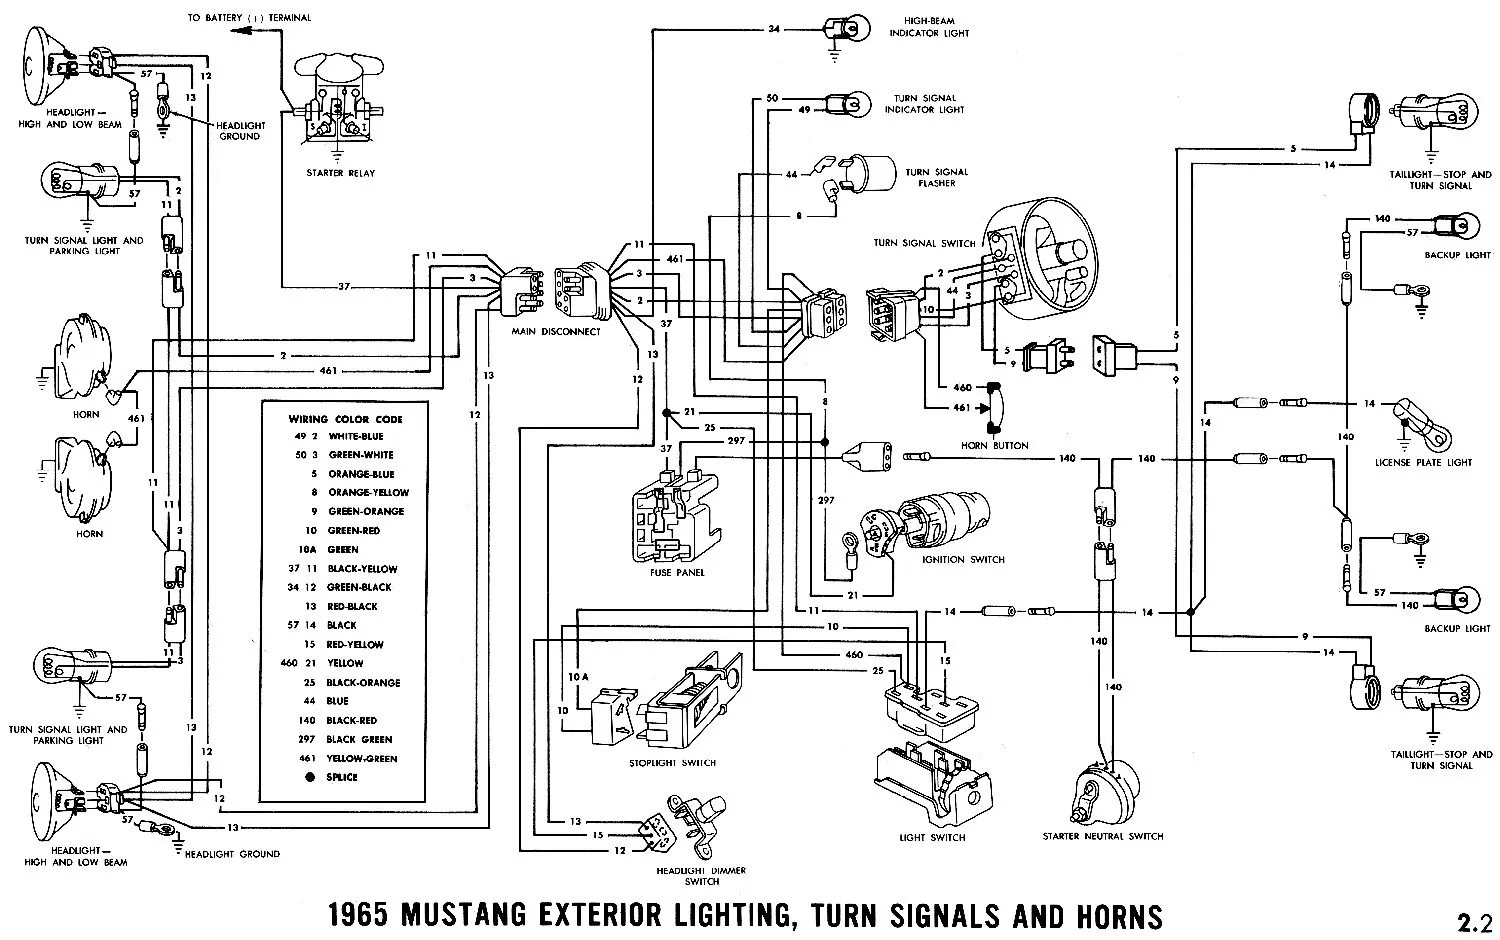 hight resolution of 1969 mustang dash wiring diagram simple wiring diagram car stereo color wiring diagram 1966 mustang color